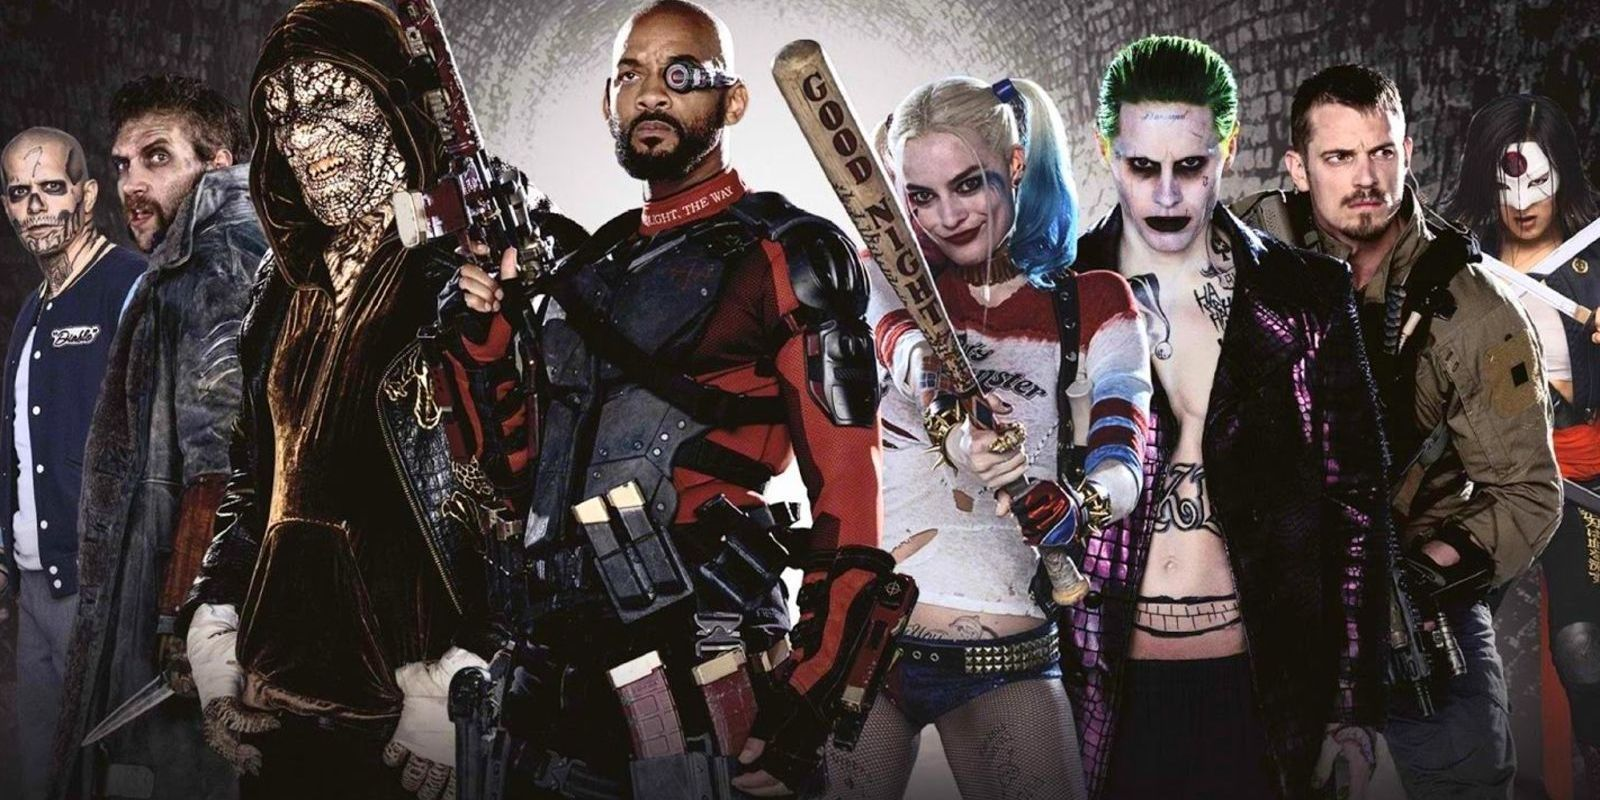 What Song Is Featured In The Suicide Squad Trailer? | Screen Rant